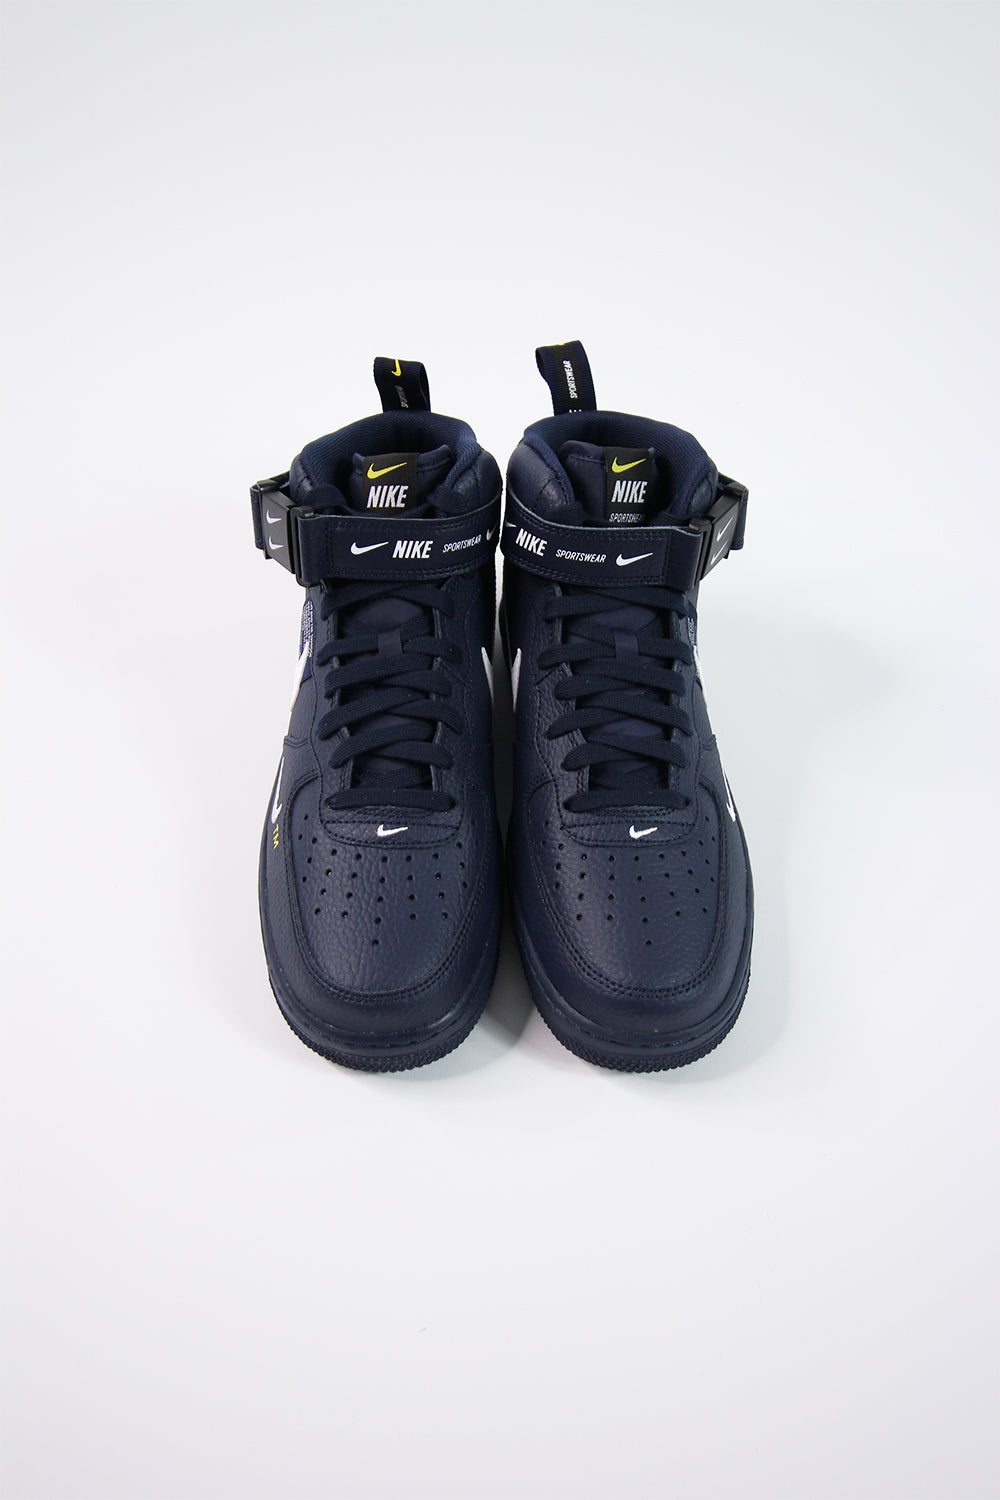 hot sale online 88e48 ce3b0 Nike - Air Force 1 Mid' 07 LV8 (Obsidian/White Black Tour ...